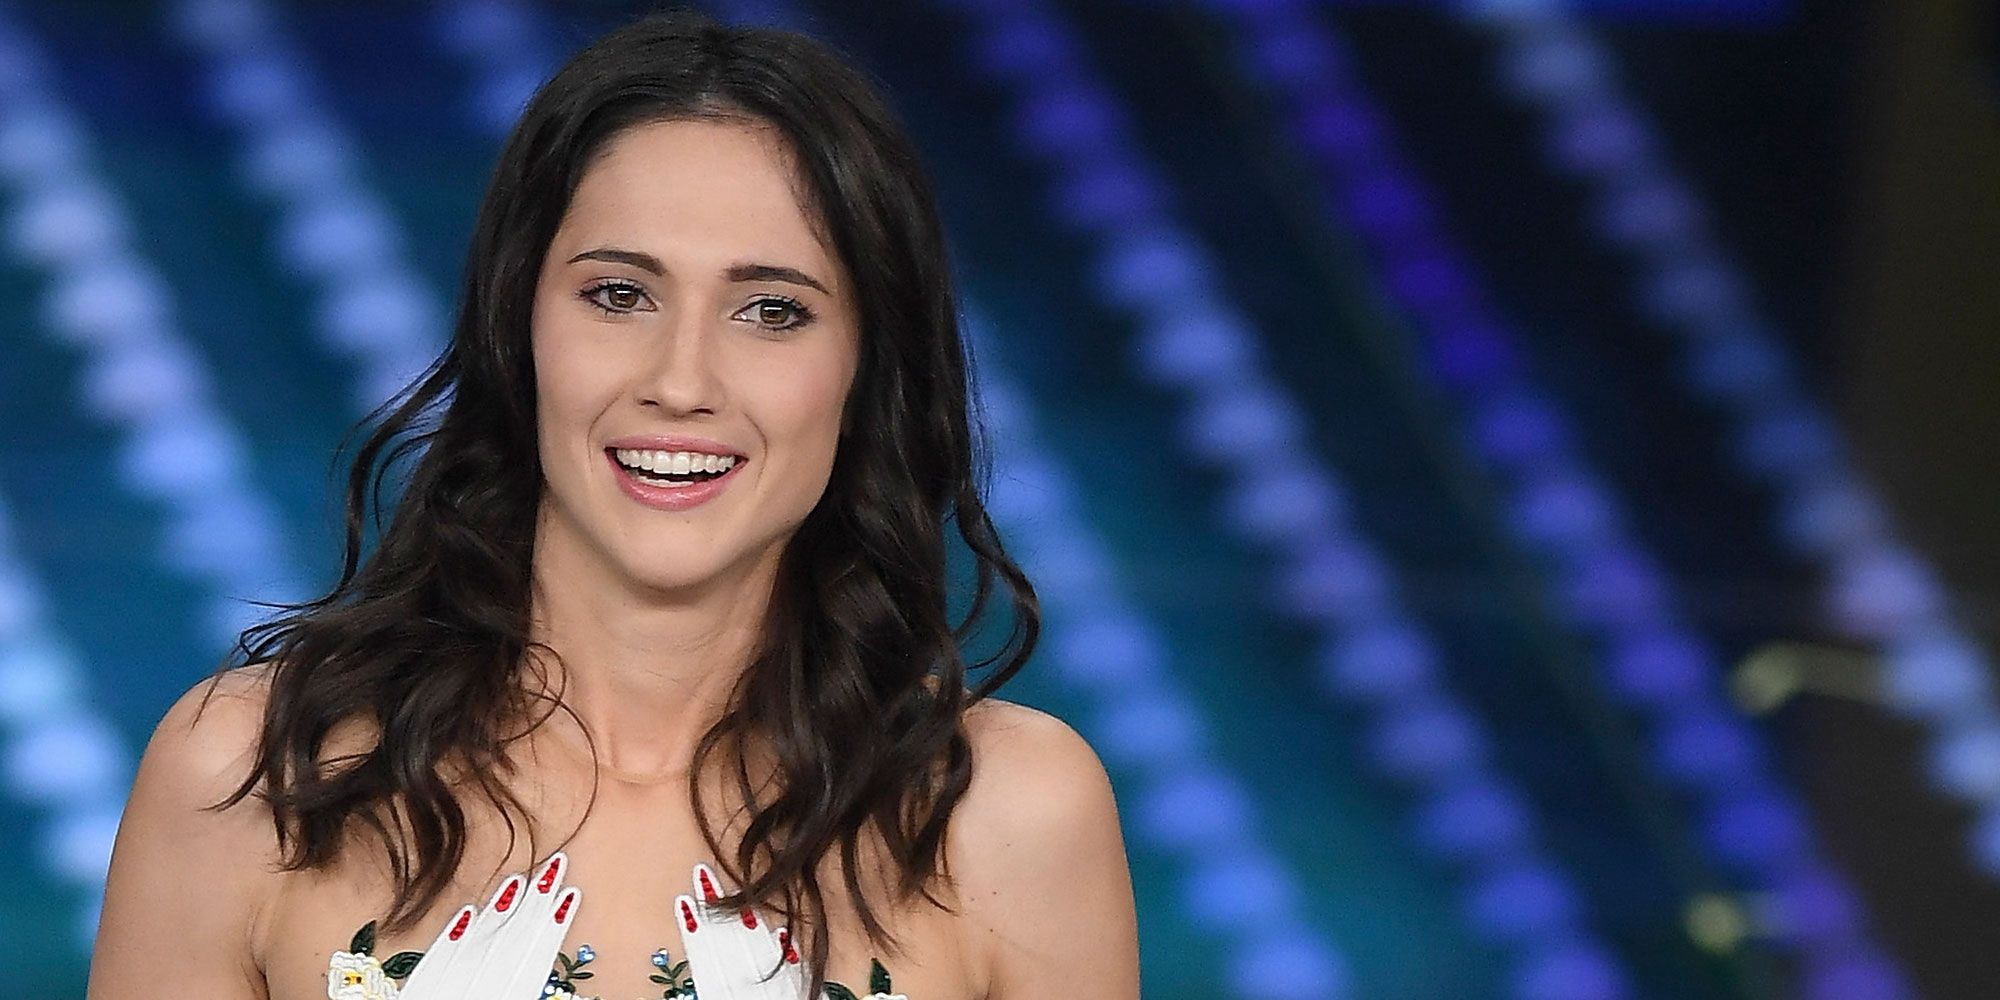 Lodovica Comello (born 1990) Lodovica Comello (born 1990) new pictures